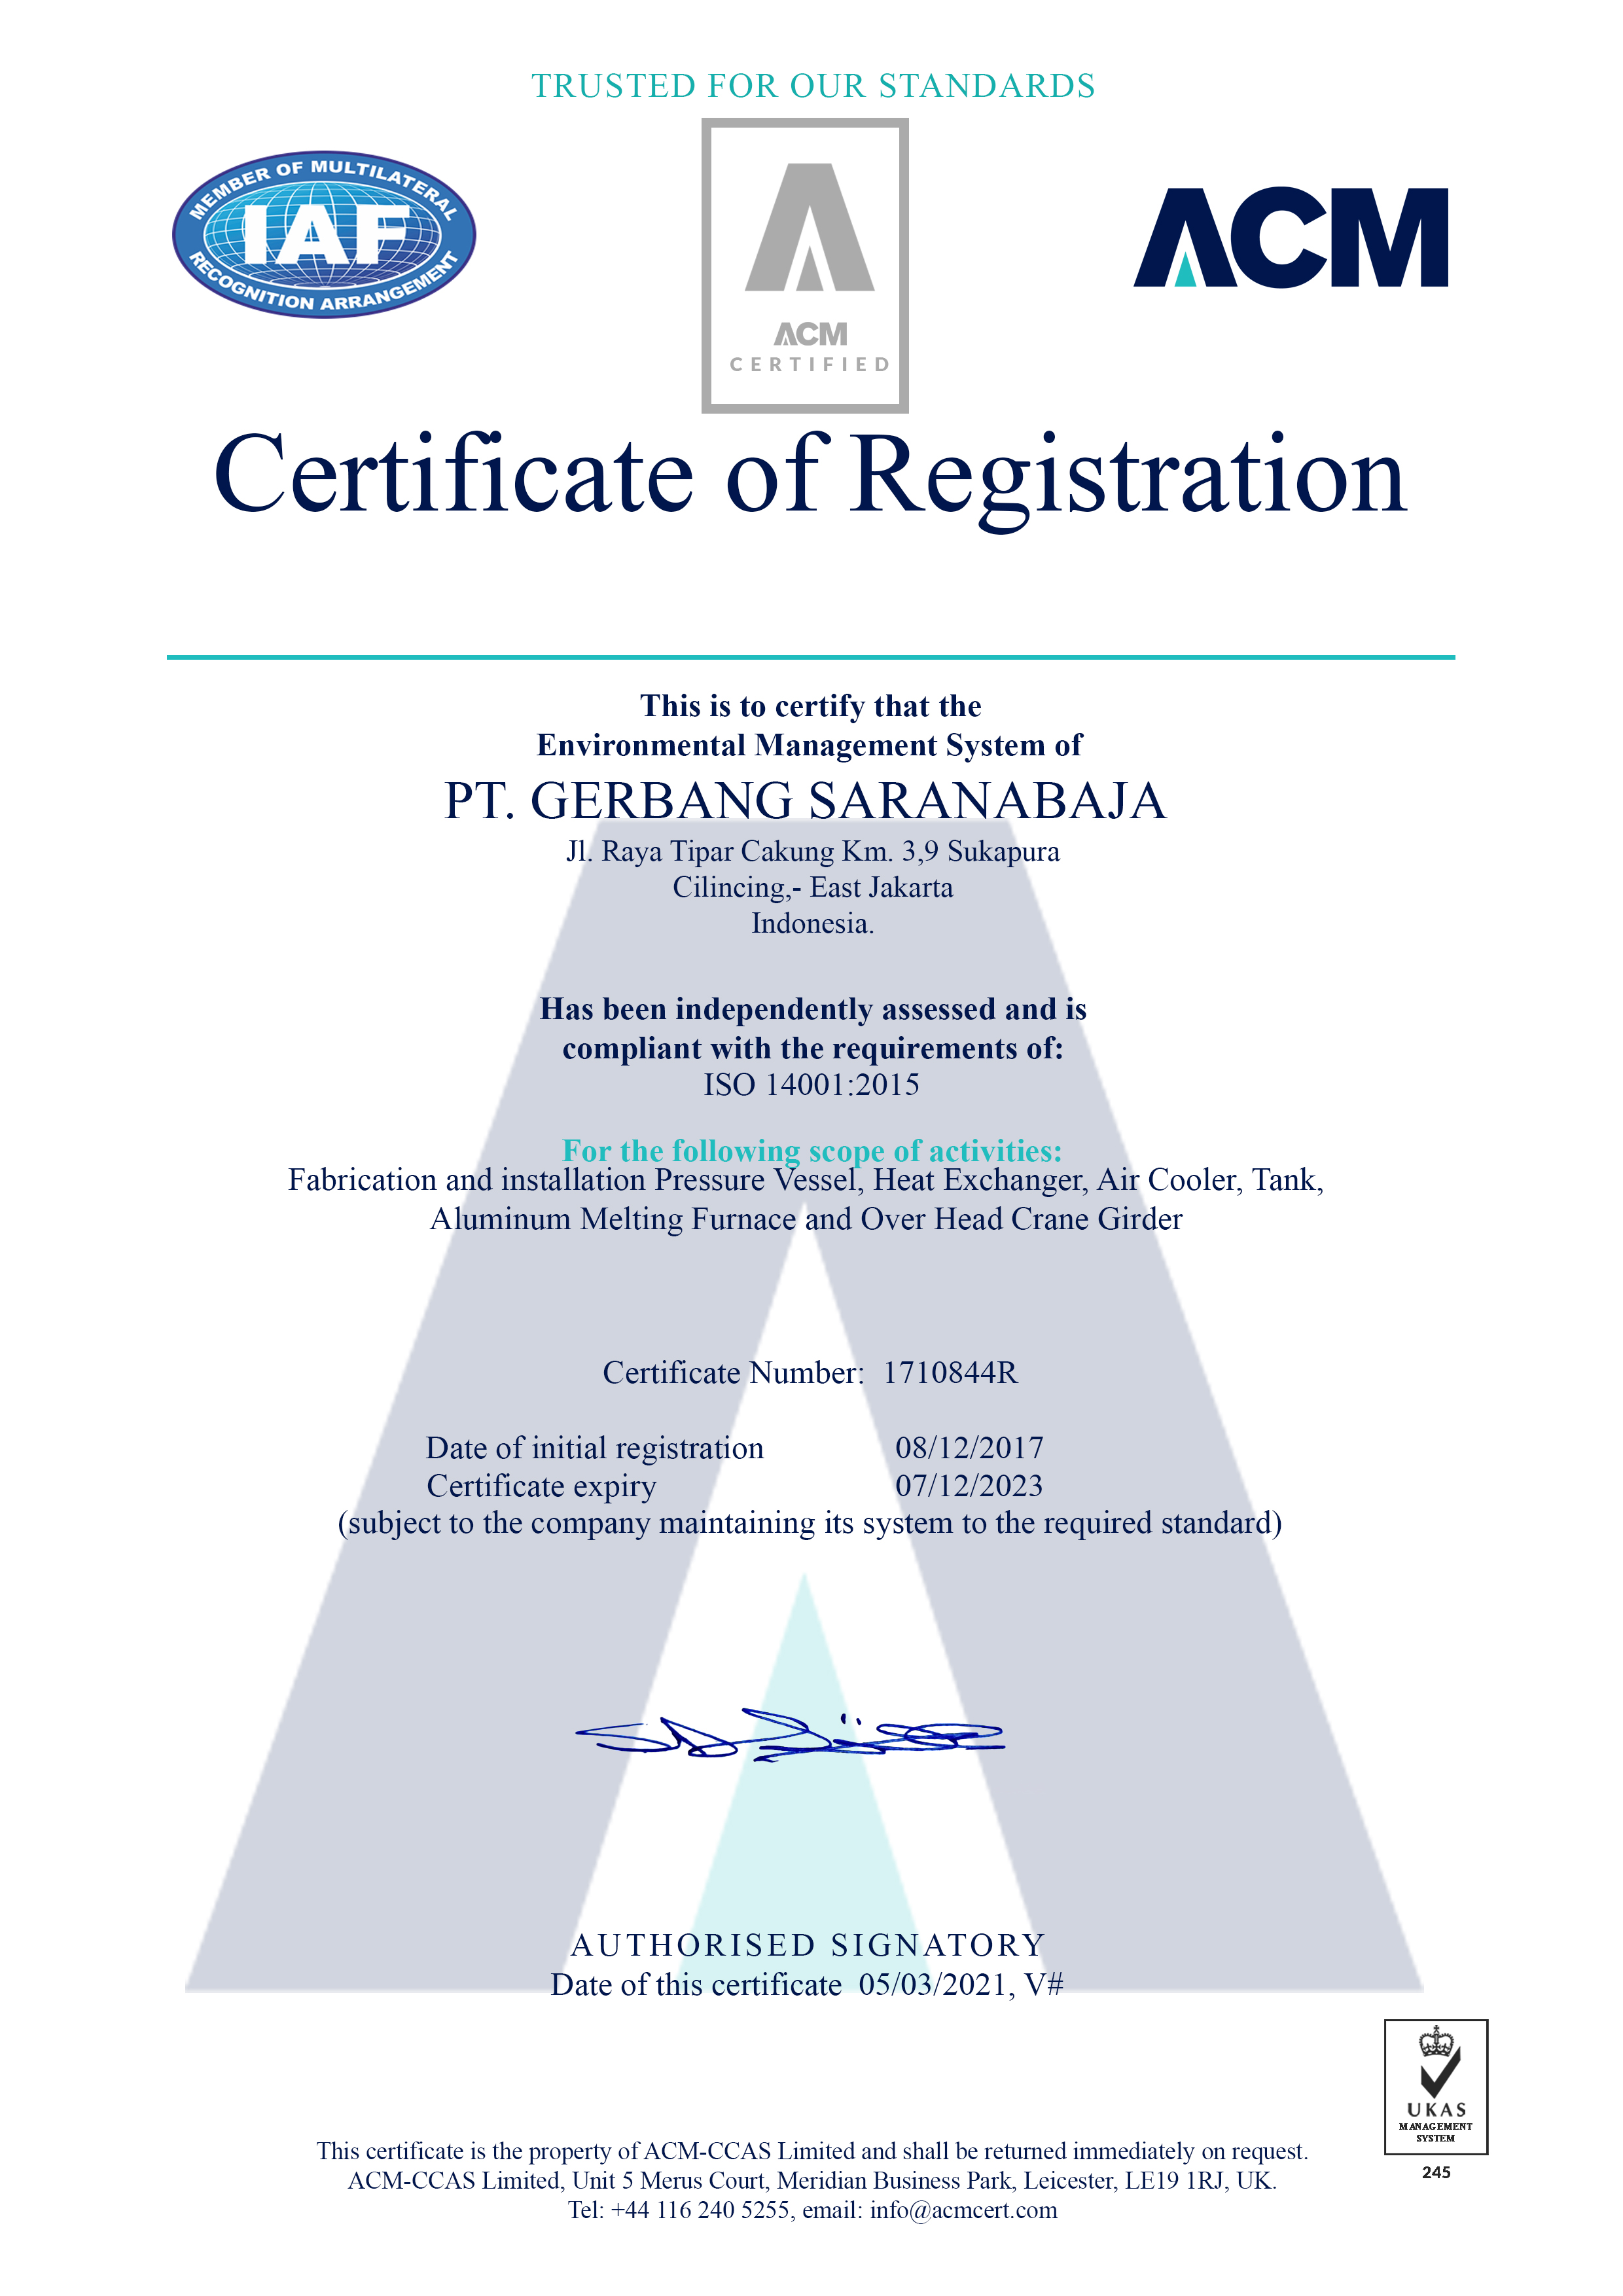 ISO 14001:2018